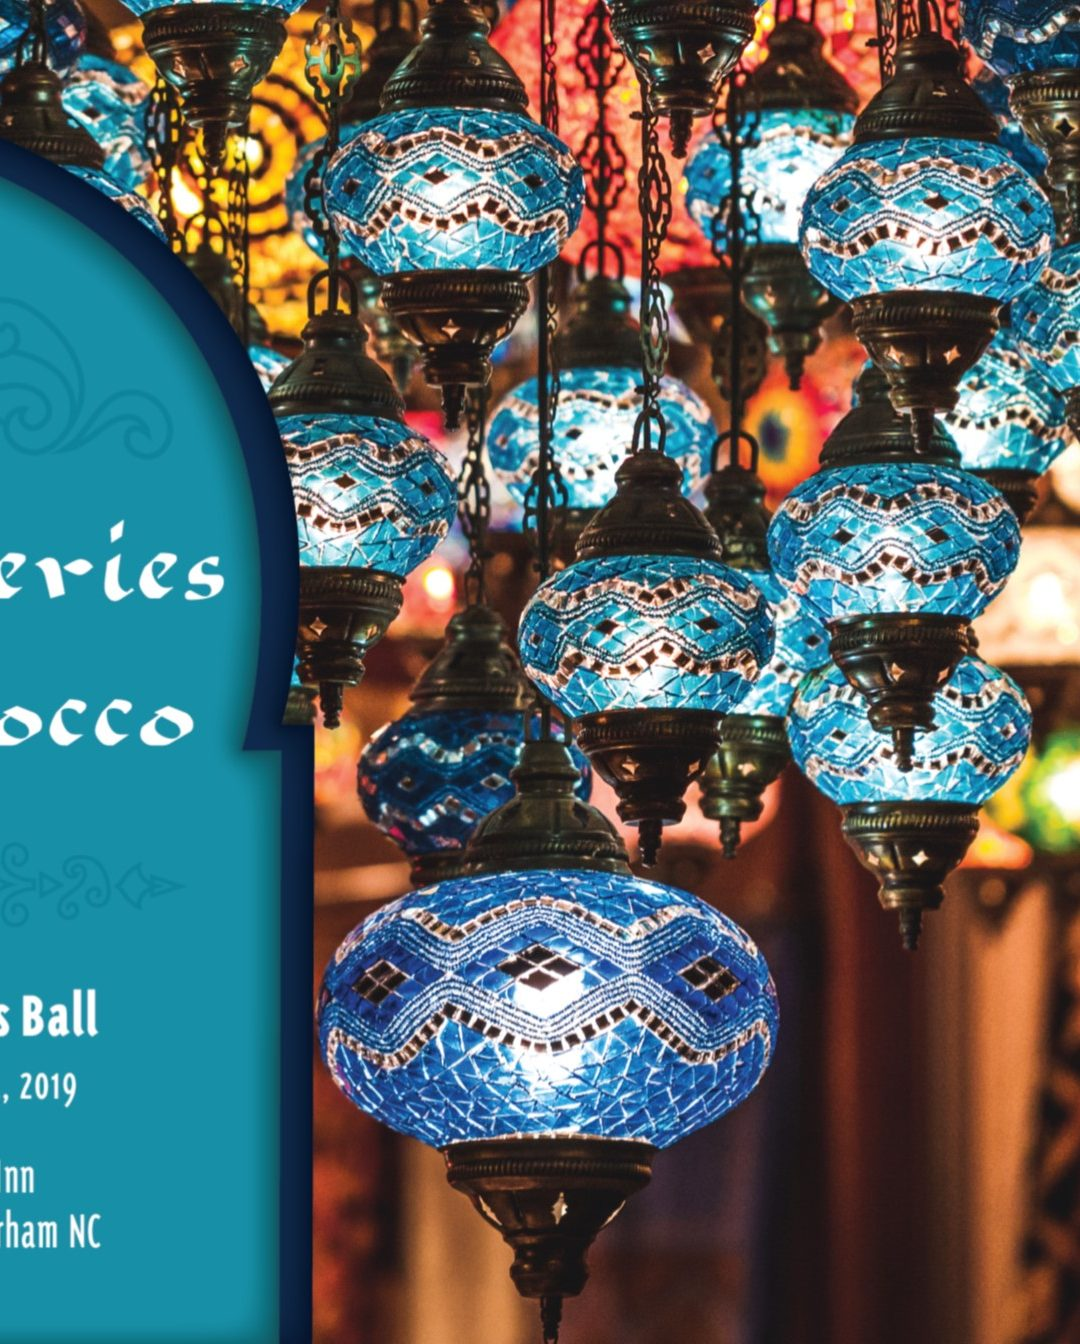 2019 Ball: The Mysteries of Morocco